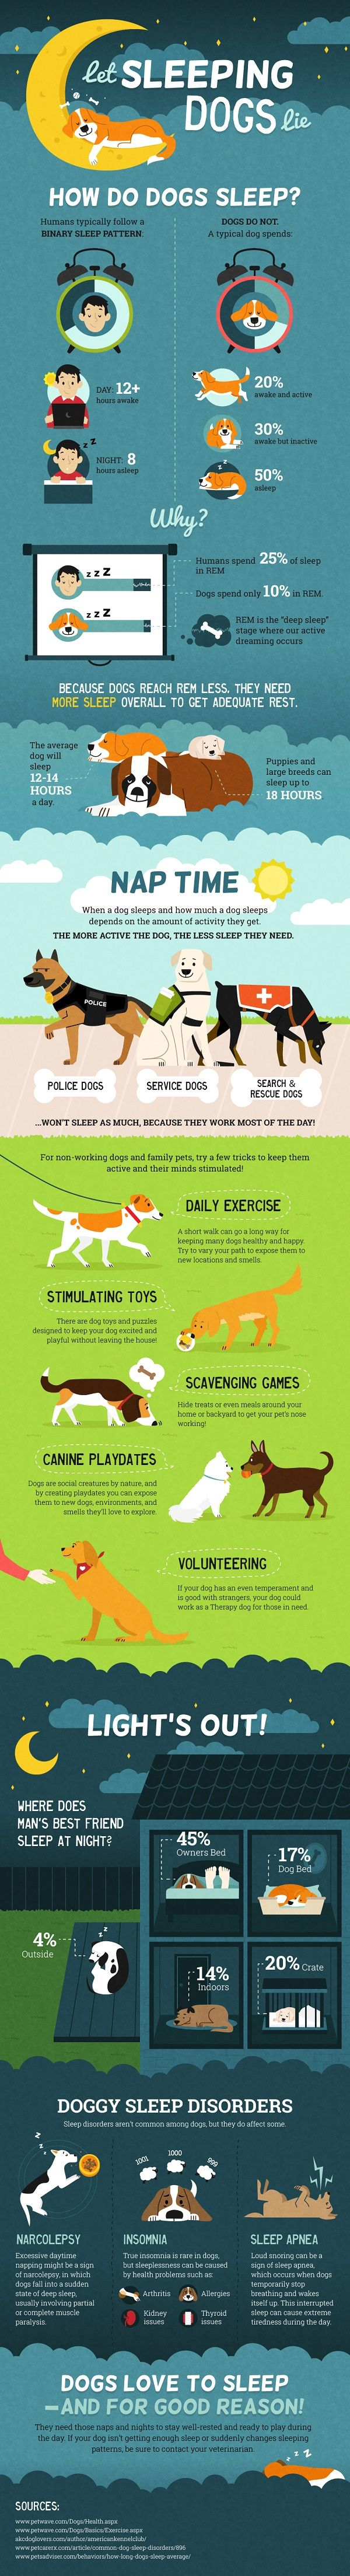 When a dog sleeps and how much a dog sleeps depends on the amount of activity they get. The more active the dog, the less sleep they need.: